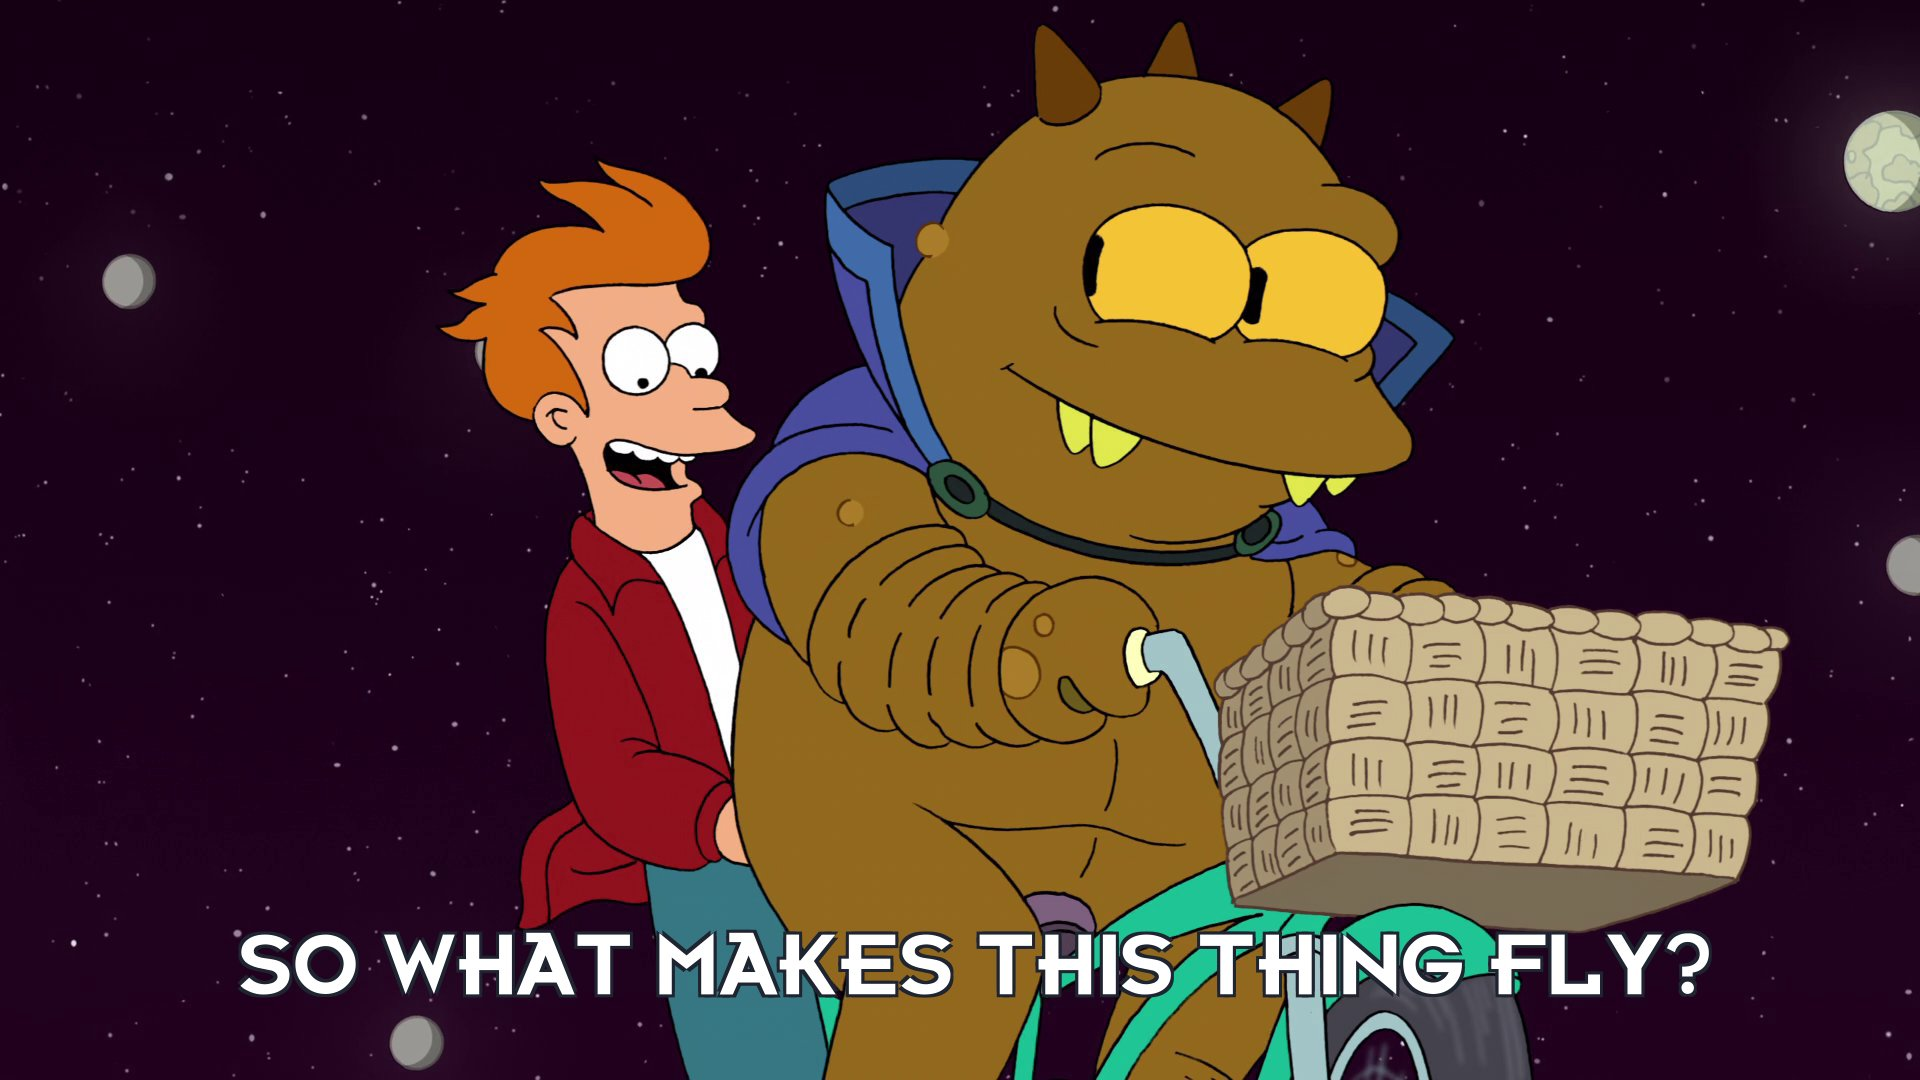 Philip J Fry: So what makes this thing fly?